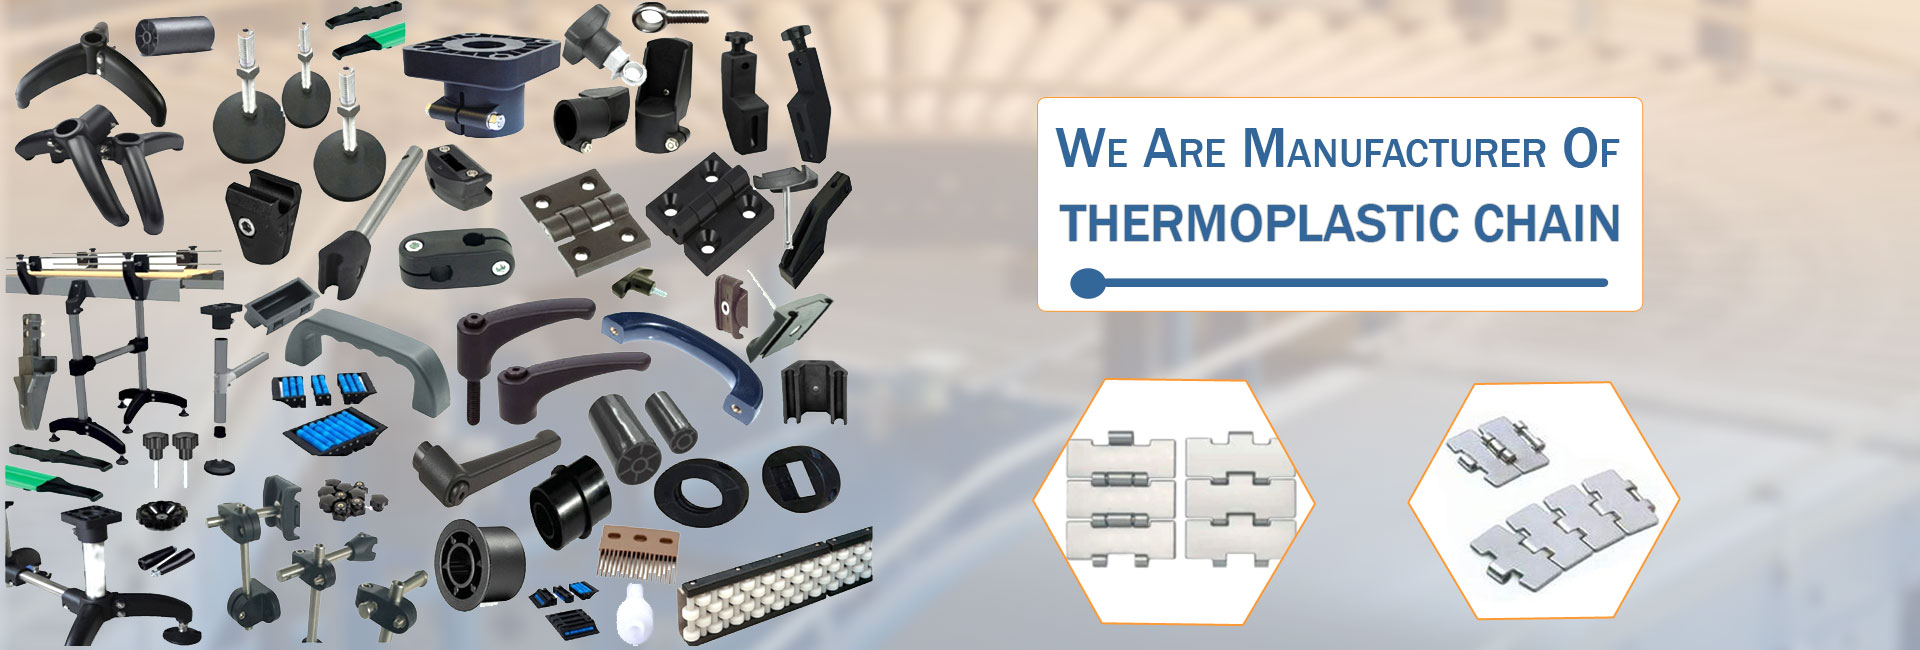 Thermoplastic Chain Manufacturer & Supplier in Hyderabad